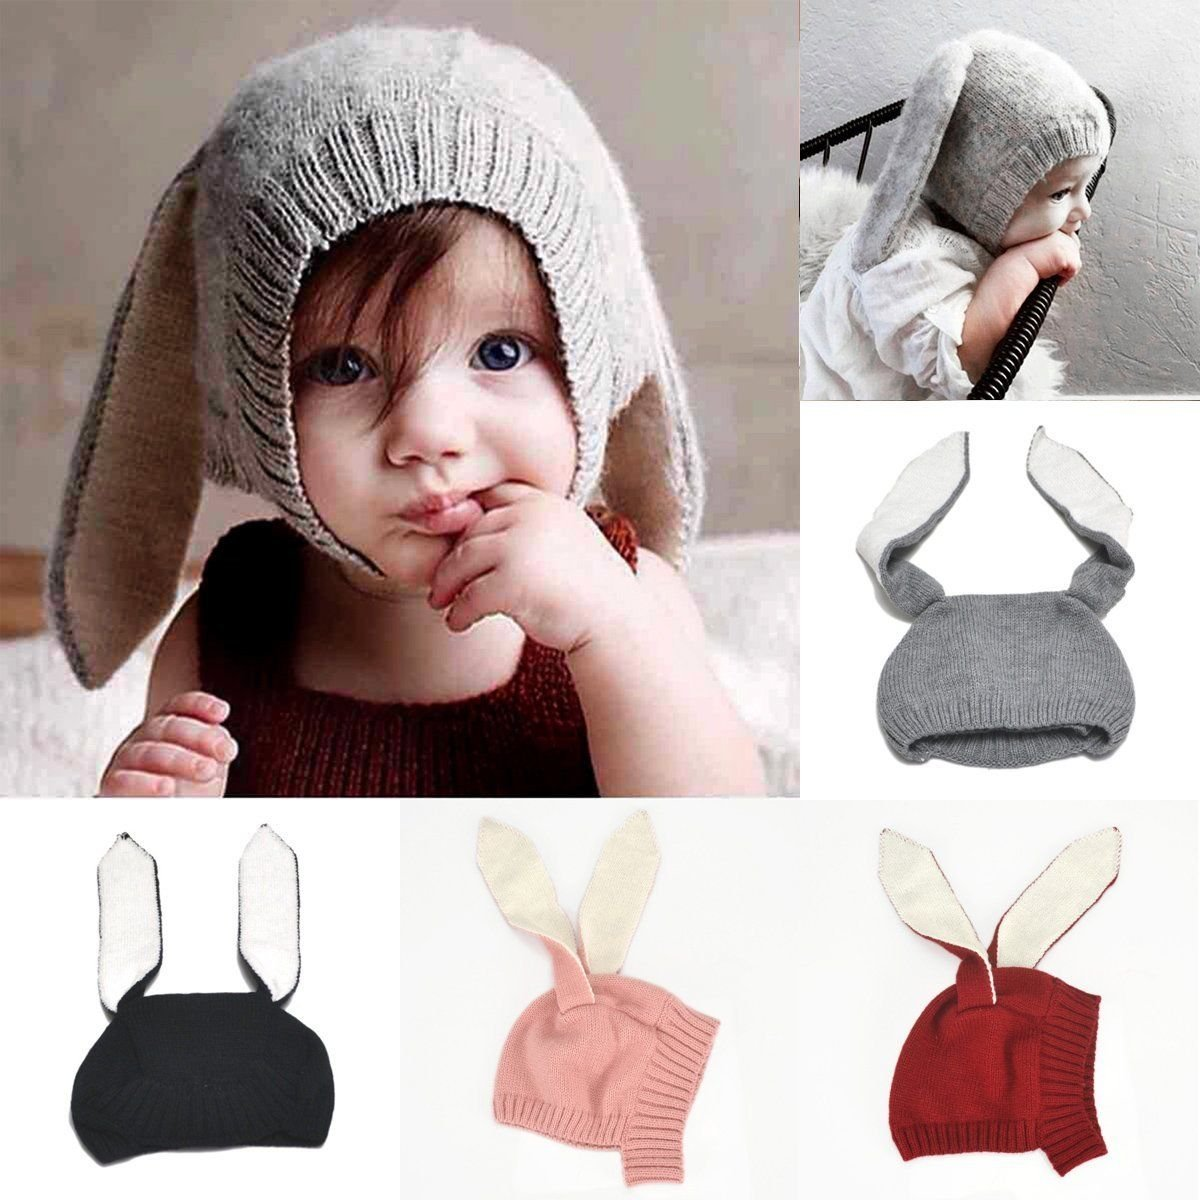 Winter Baby Toddler Kids Boy Girl Knitted Rabbit Crochet Ear Beanie Warm Hat Cap 1 pcs